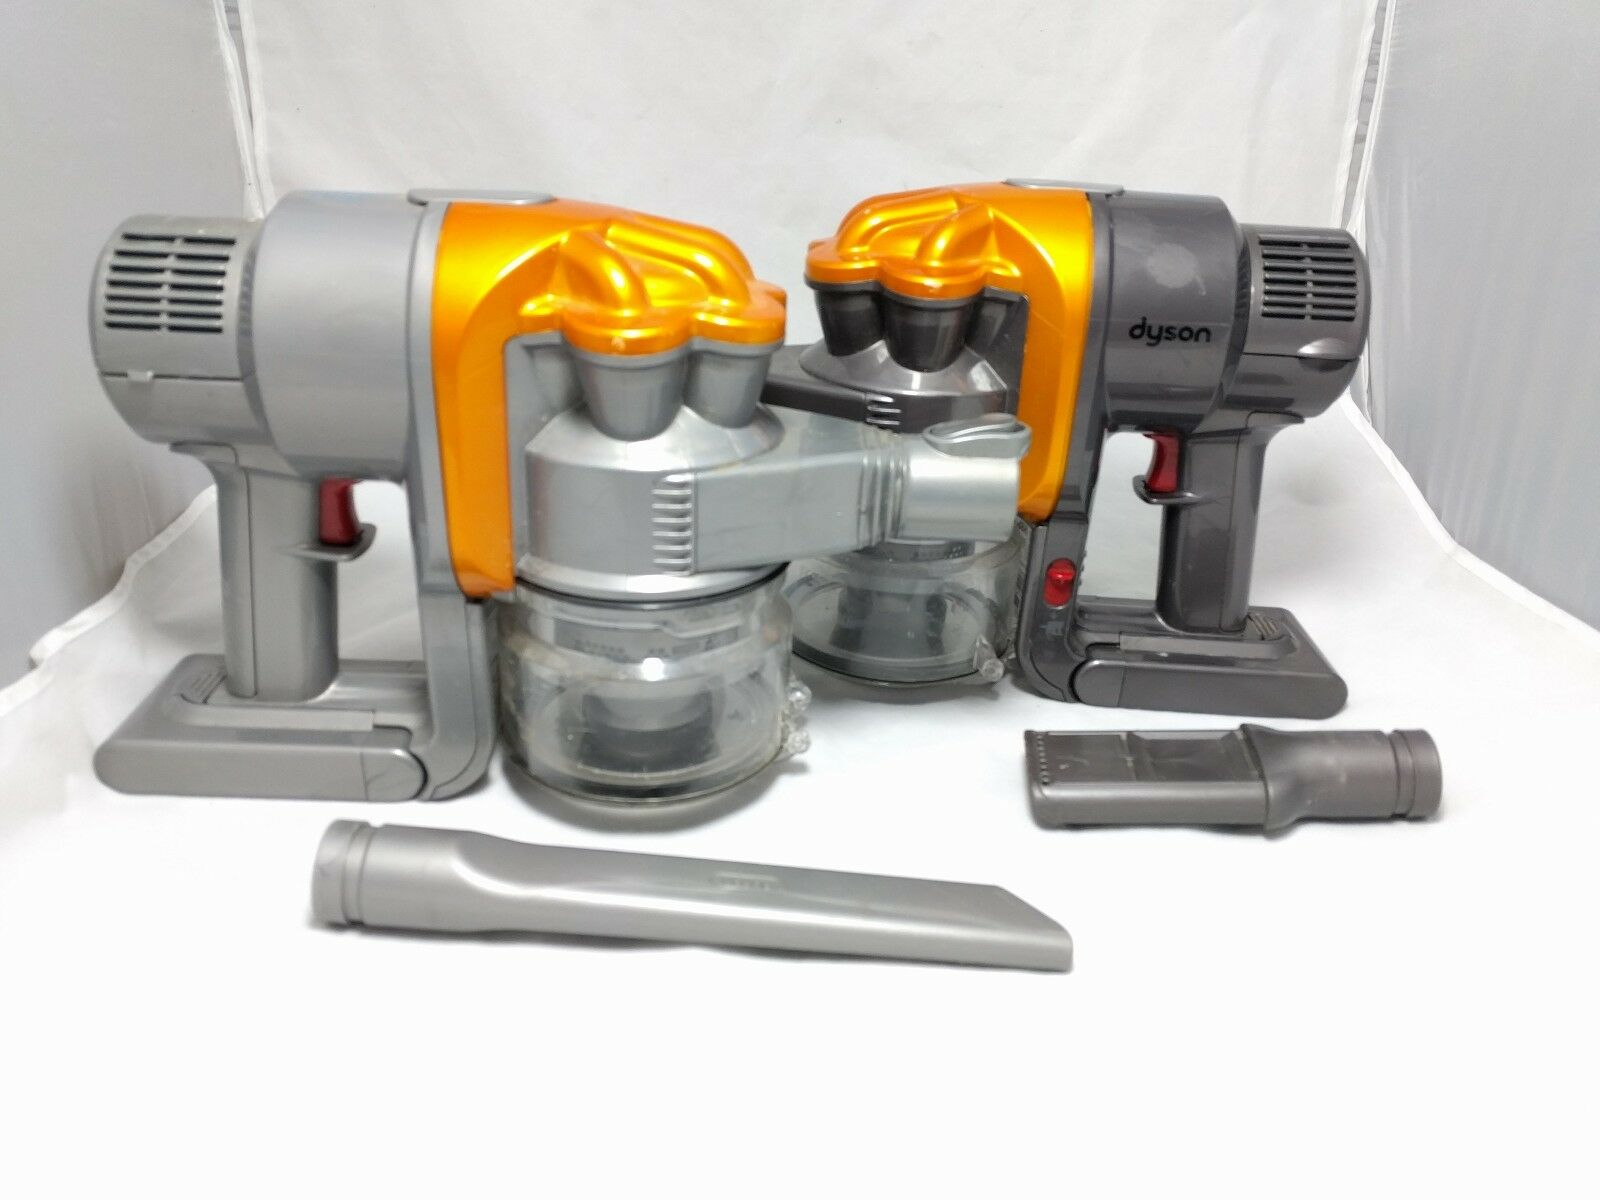 dyson dc16 animal lot of two with 2 attachments for parts main units